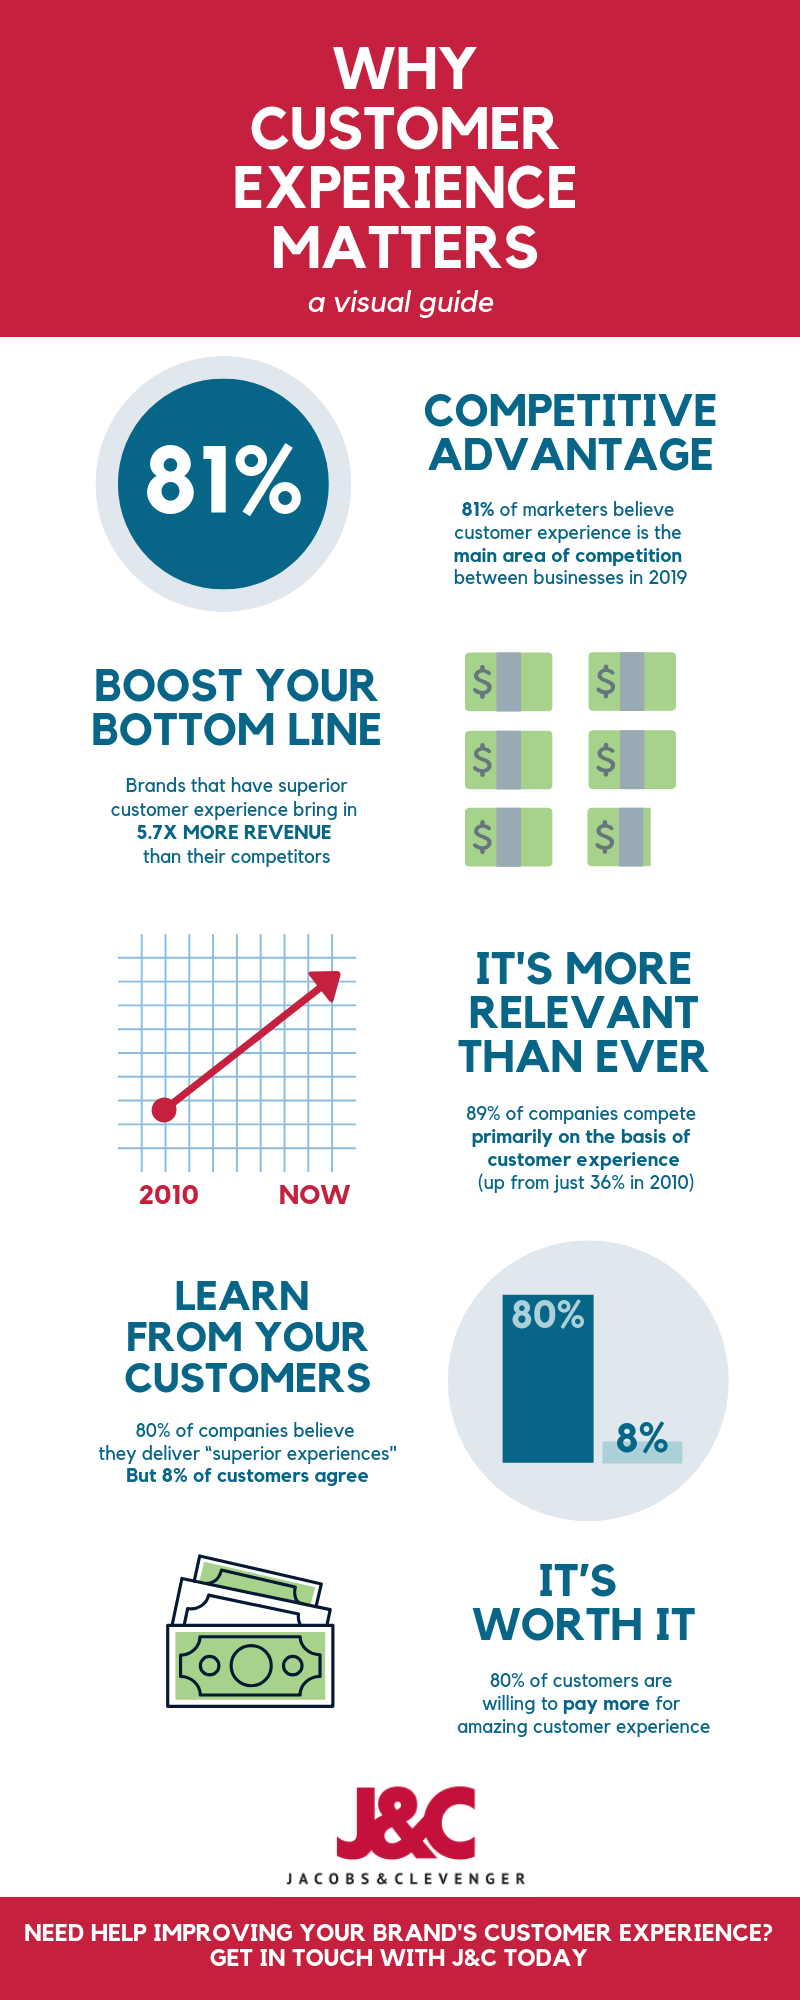 Customer Experience Matters Infographic J&C